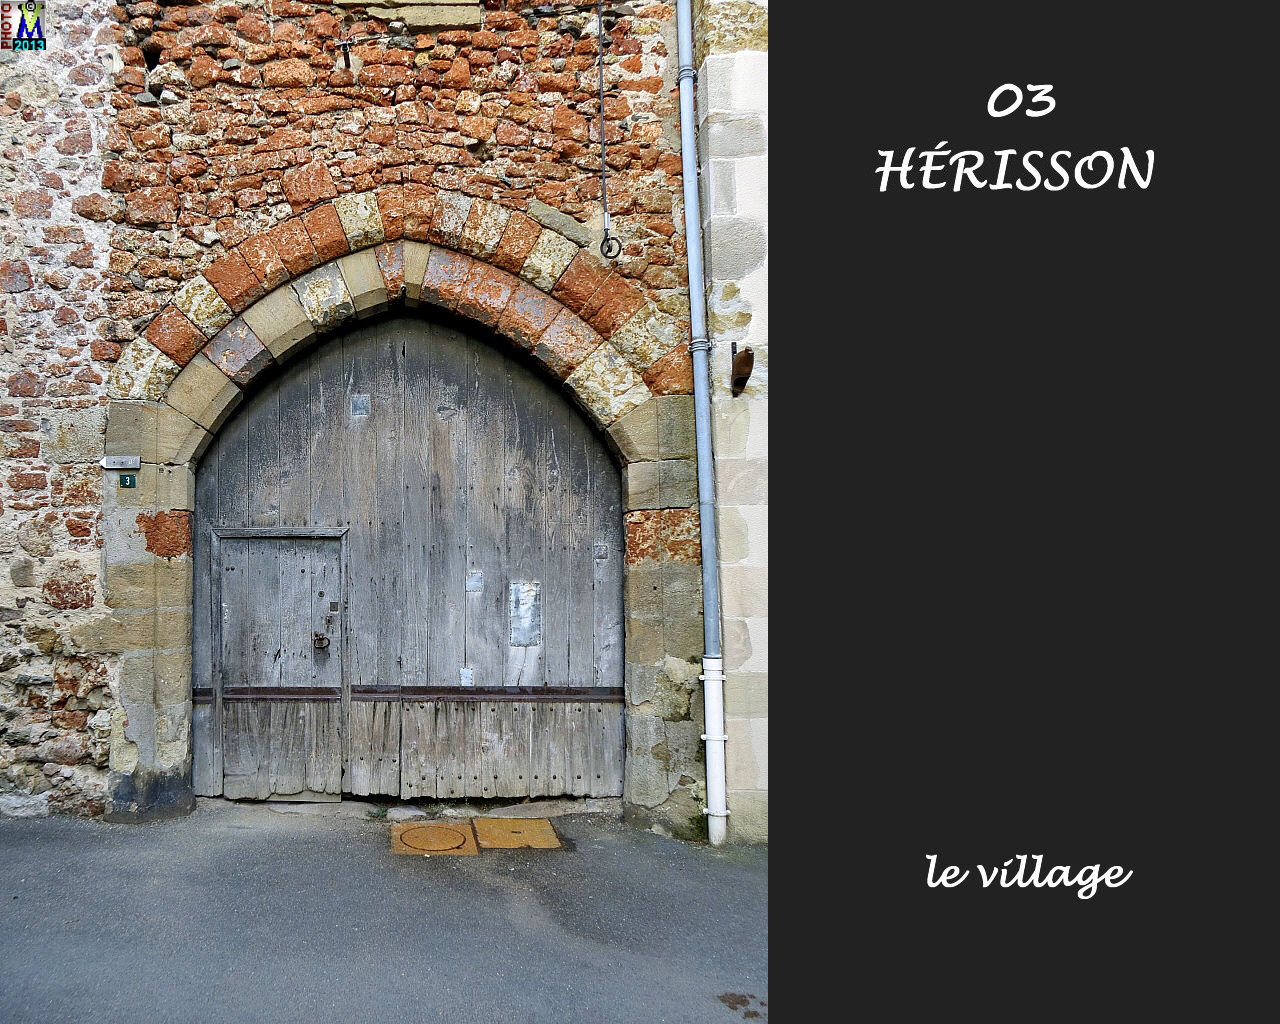 03HERISSON_village_104.jpg